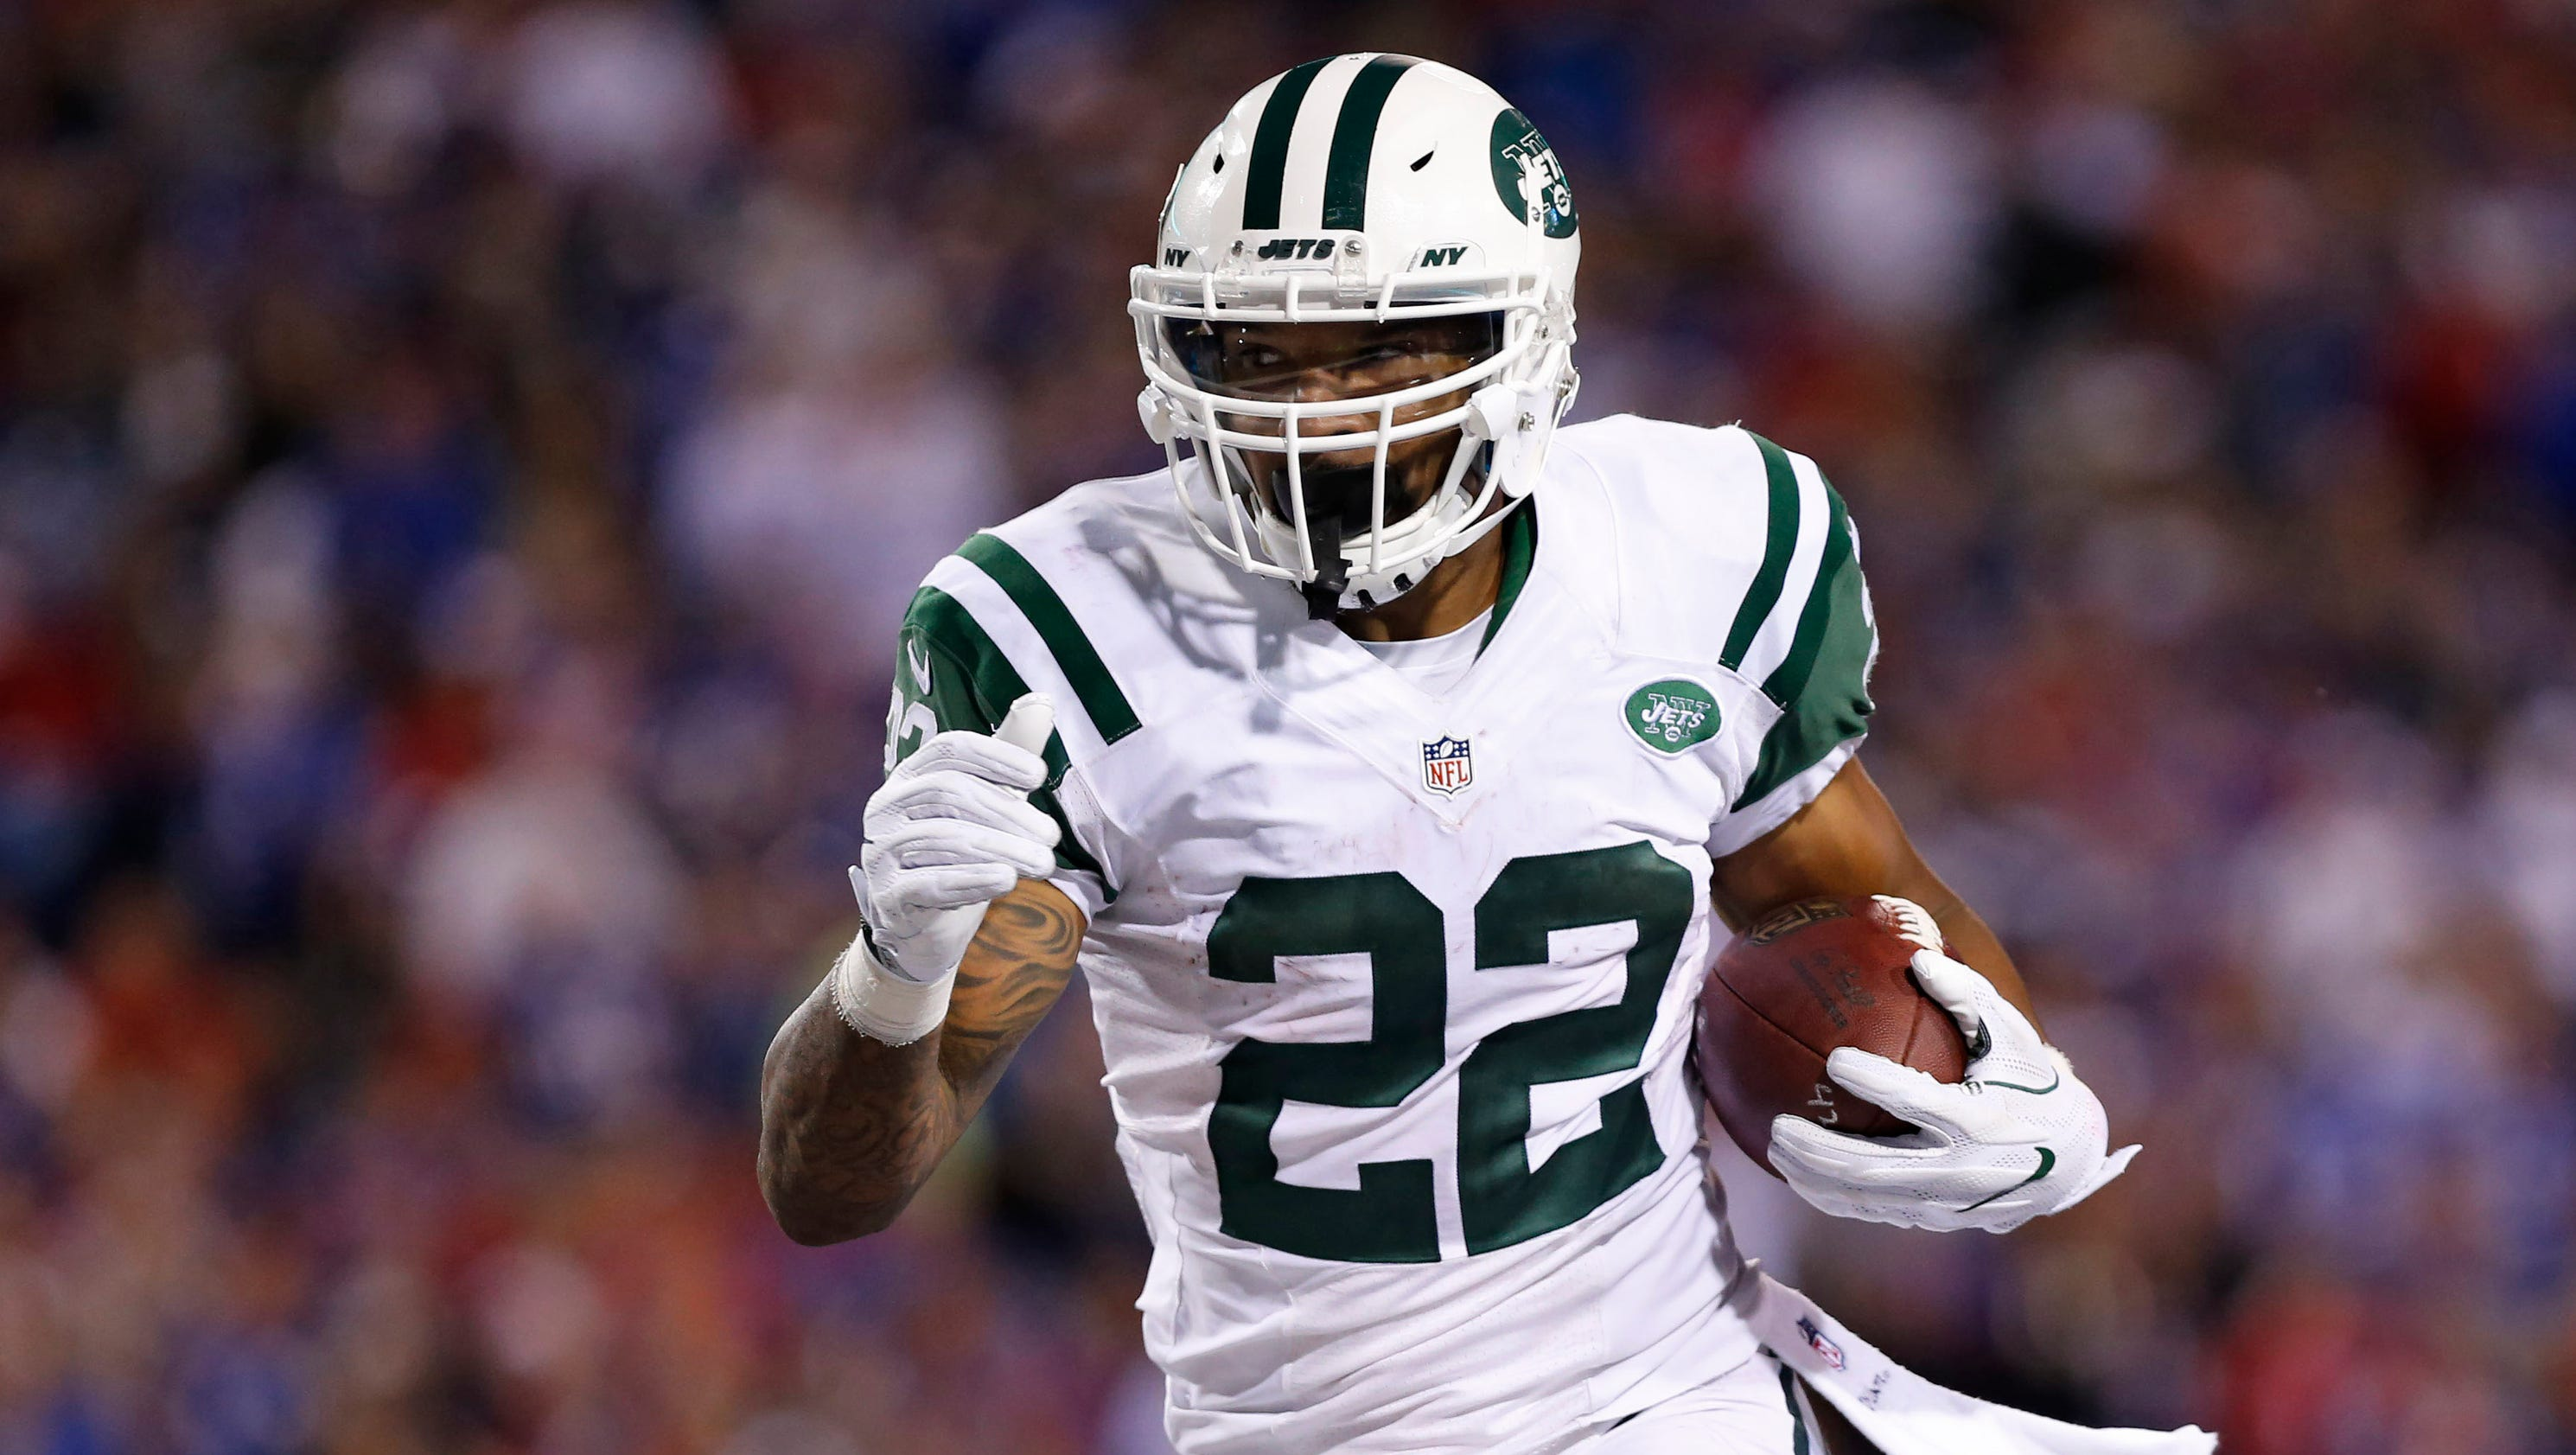 jets tanking matt forte hits back against accusations. Black Bedroom Furniture Sets. Home Design Ideas